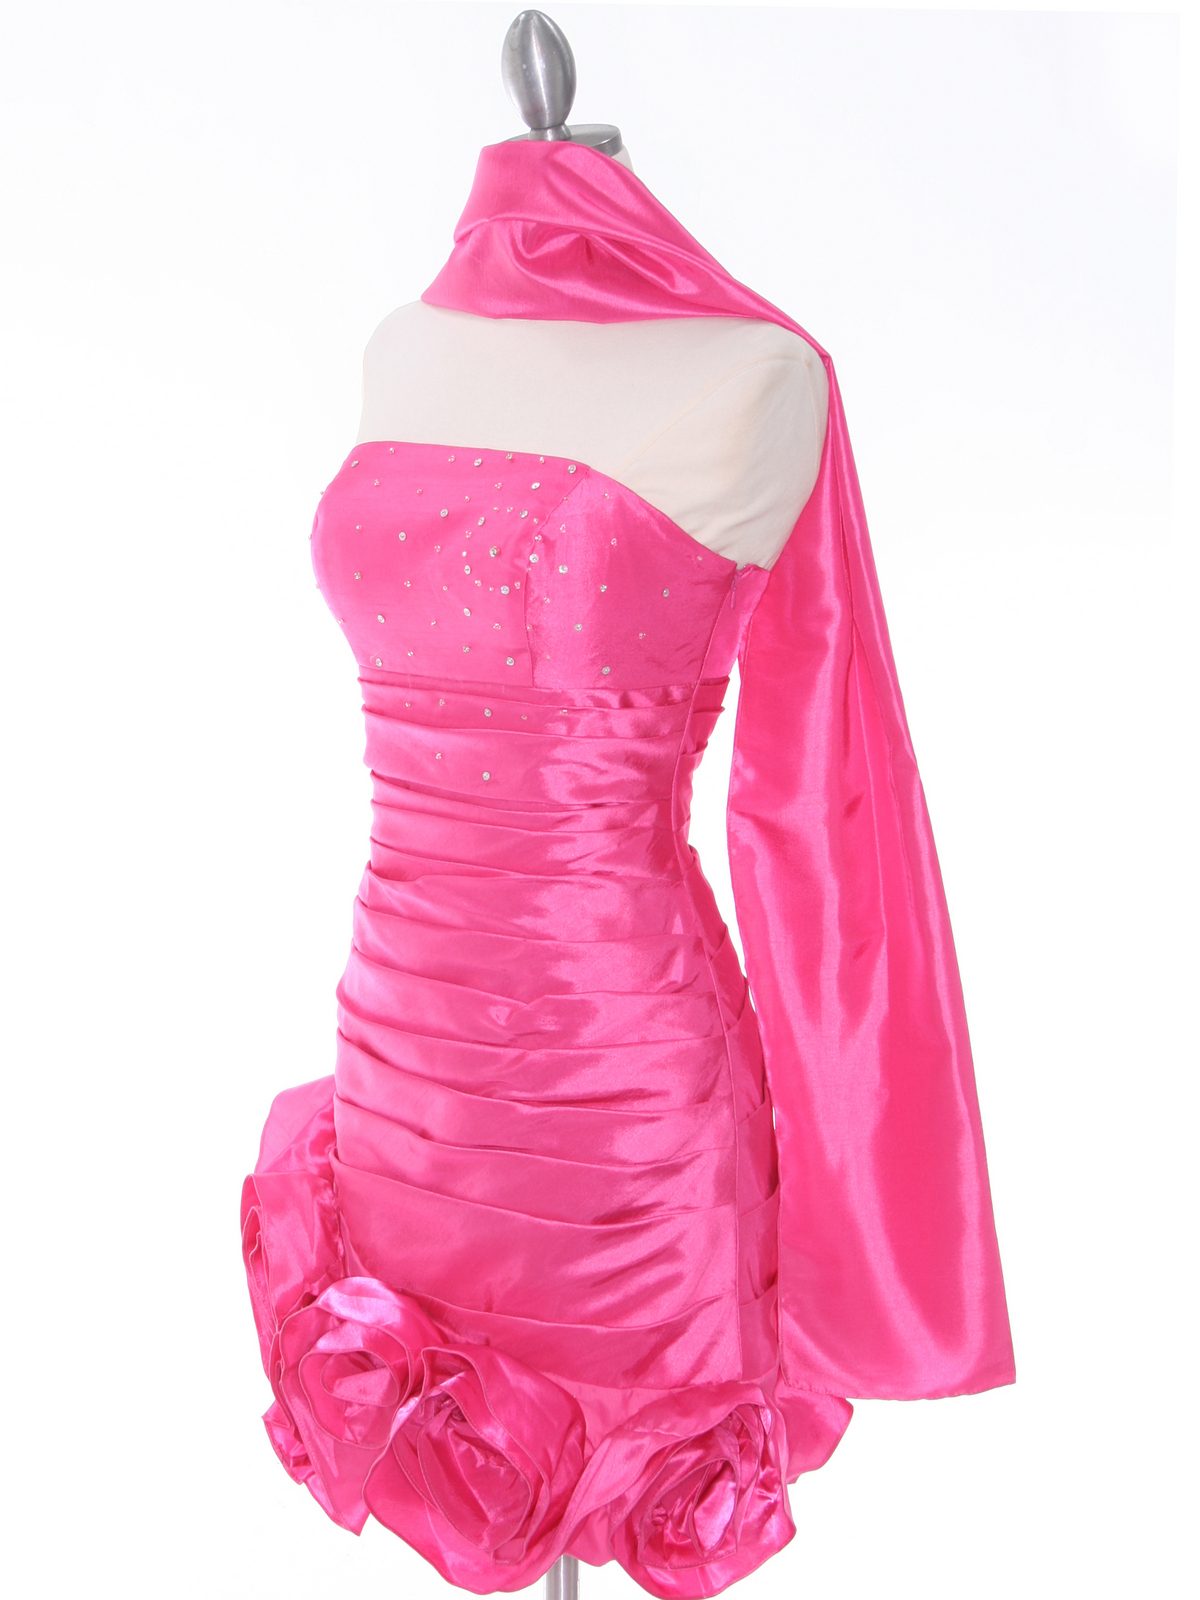 Hot Pink Strapless Pleated Cocktail Dress | Sung Boutique L.A.